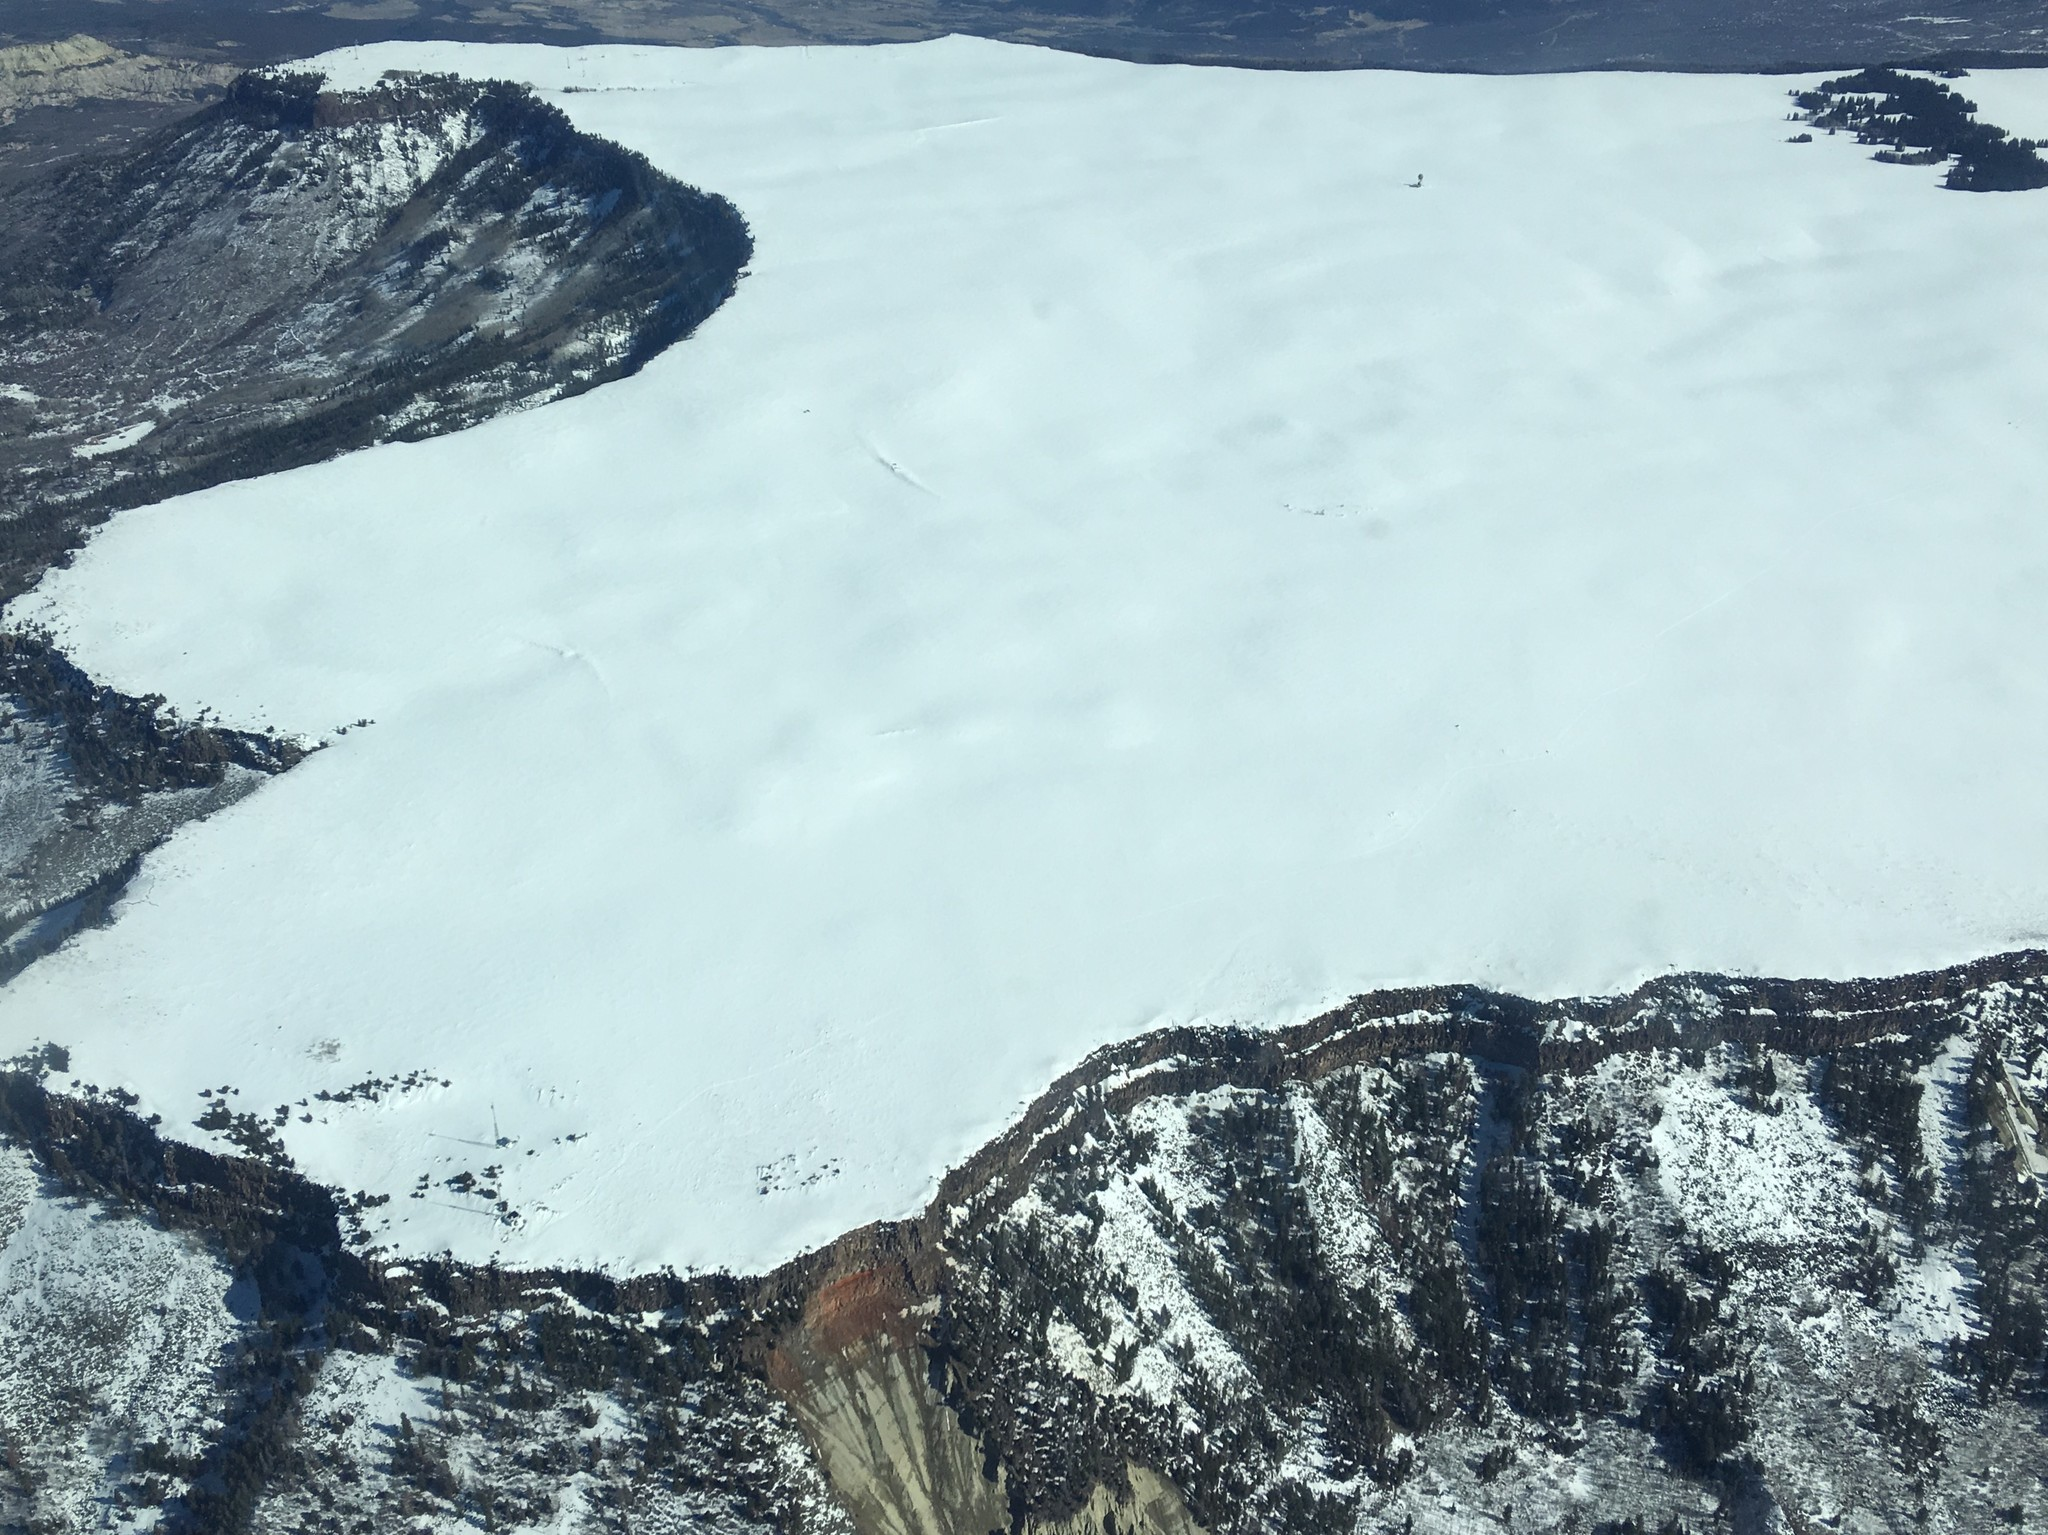 The Grand Mesa, Colo., study site as seen from an Airborne Snow Observatory plane.